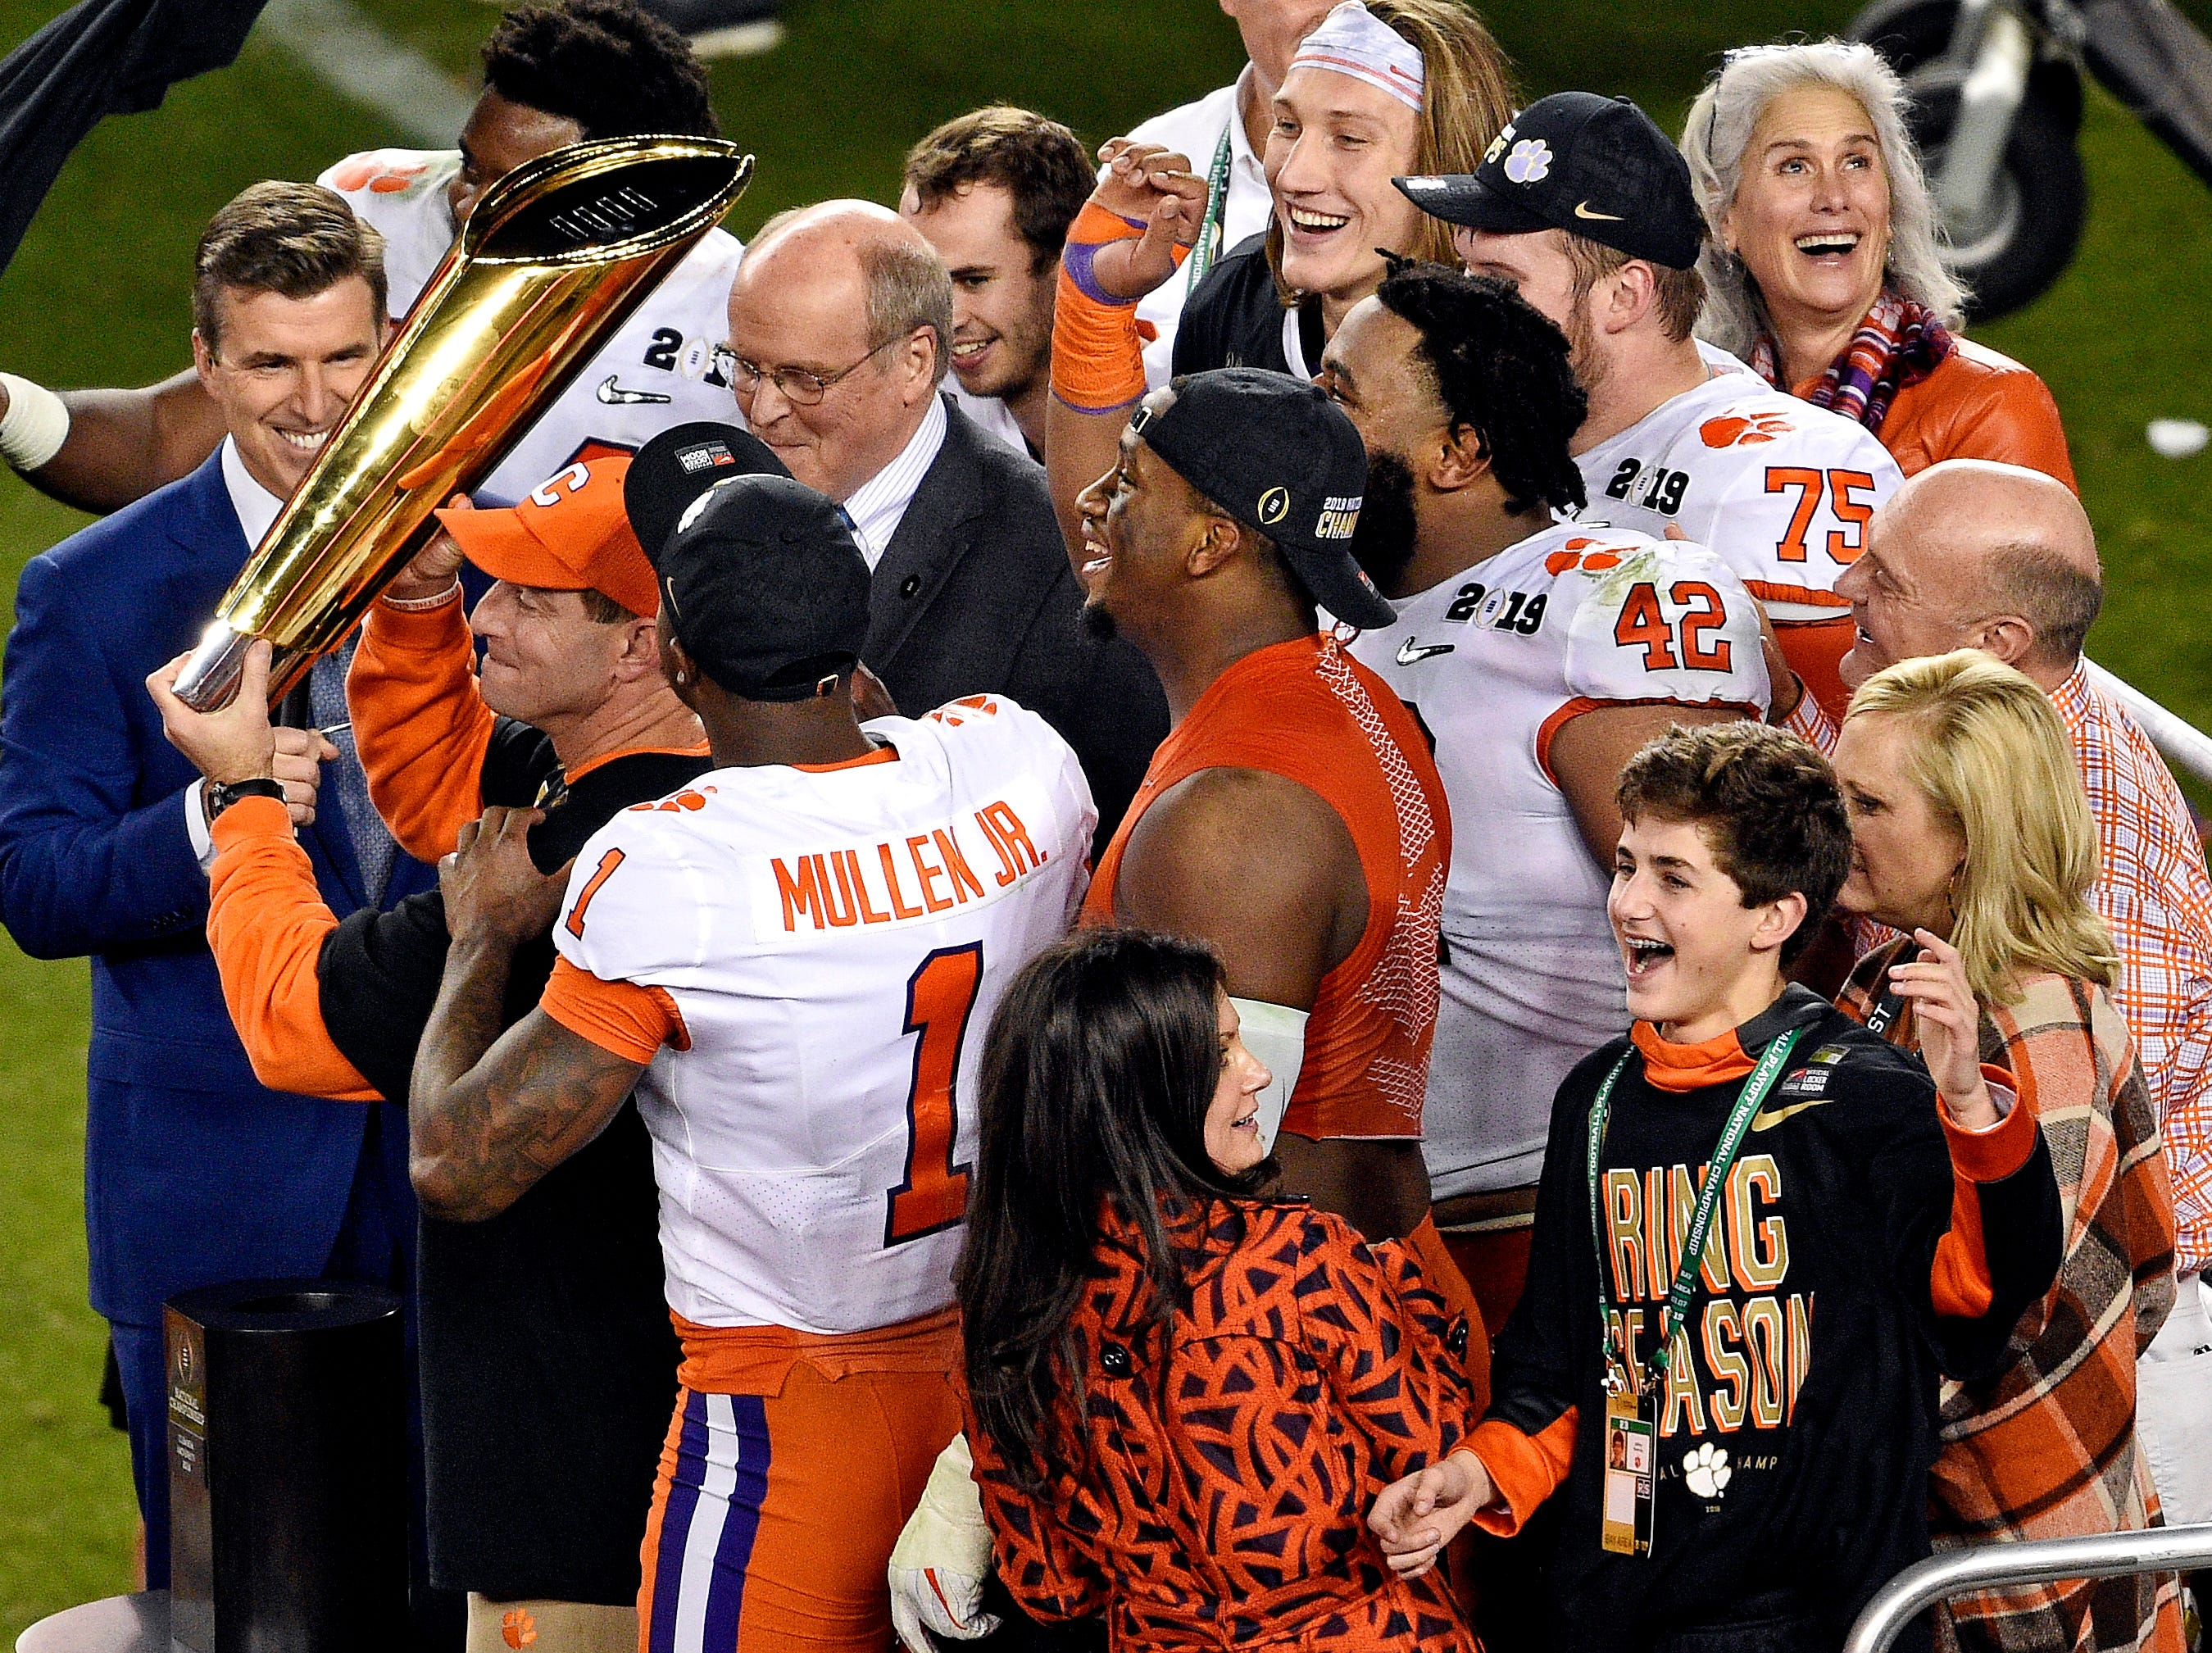 Jan 7, 2019; Santa Clara, CA, USA; Clemson Tigers head coach Dabo Swinney celebrates with the national championship trophy after beating the Alabama Crimson Tide during the 2019 College Football Playoff Championship game at Levi's Stadium. Mandatory Credit: Kelvin Kuo-USA TODAY Sports